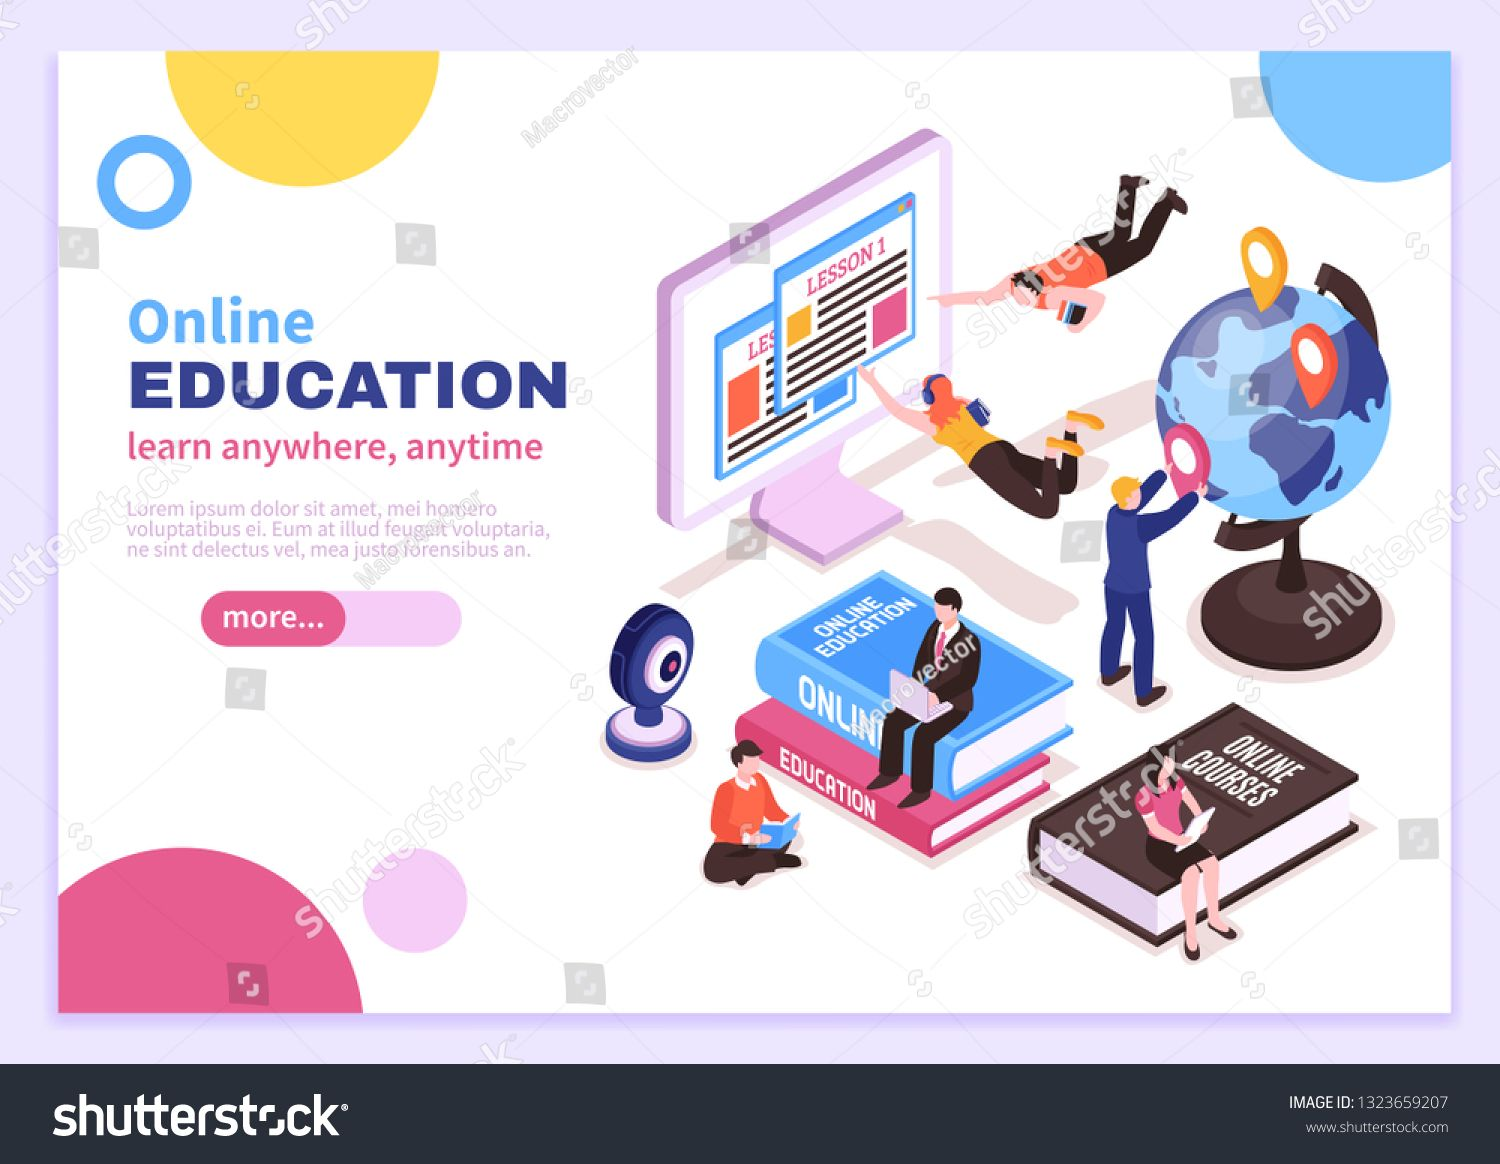 Online Education Isometric Poster With Tutorials Advertising Distance Courses And Slogan Learn A Online Education Free Online Education Education Poster Design